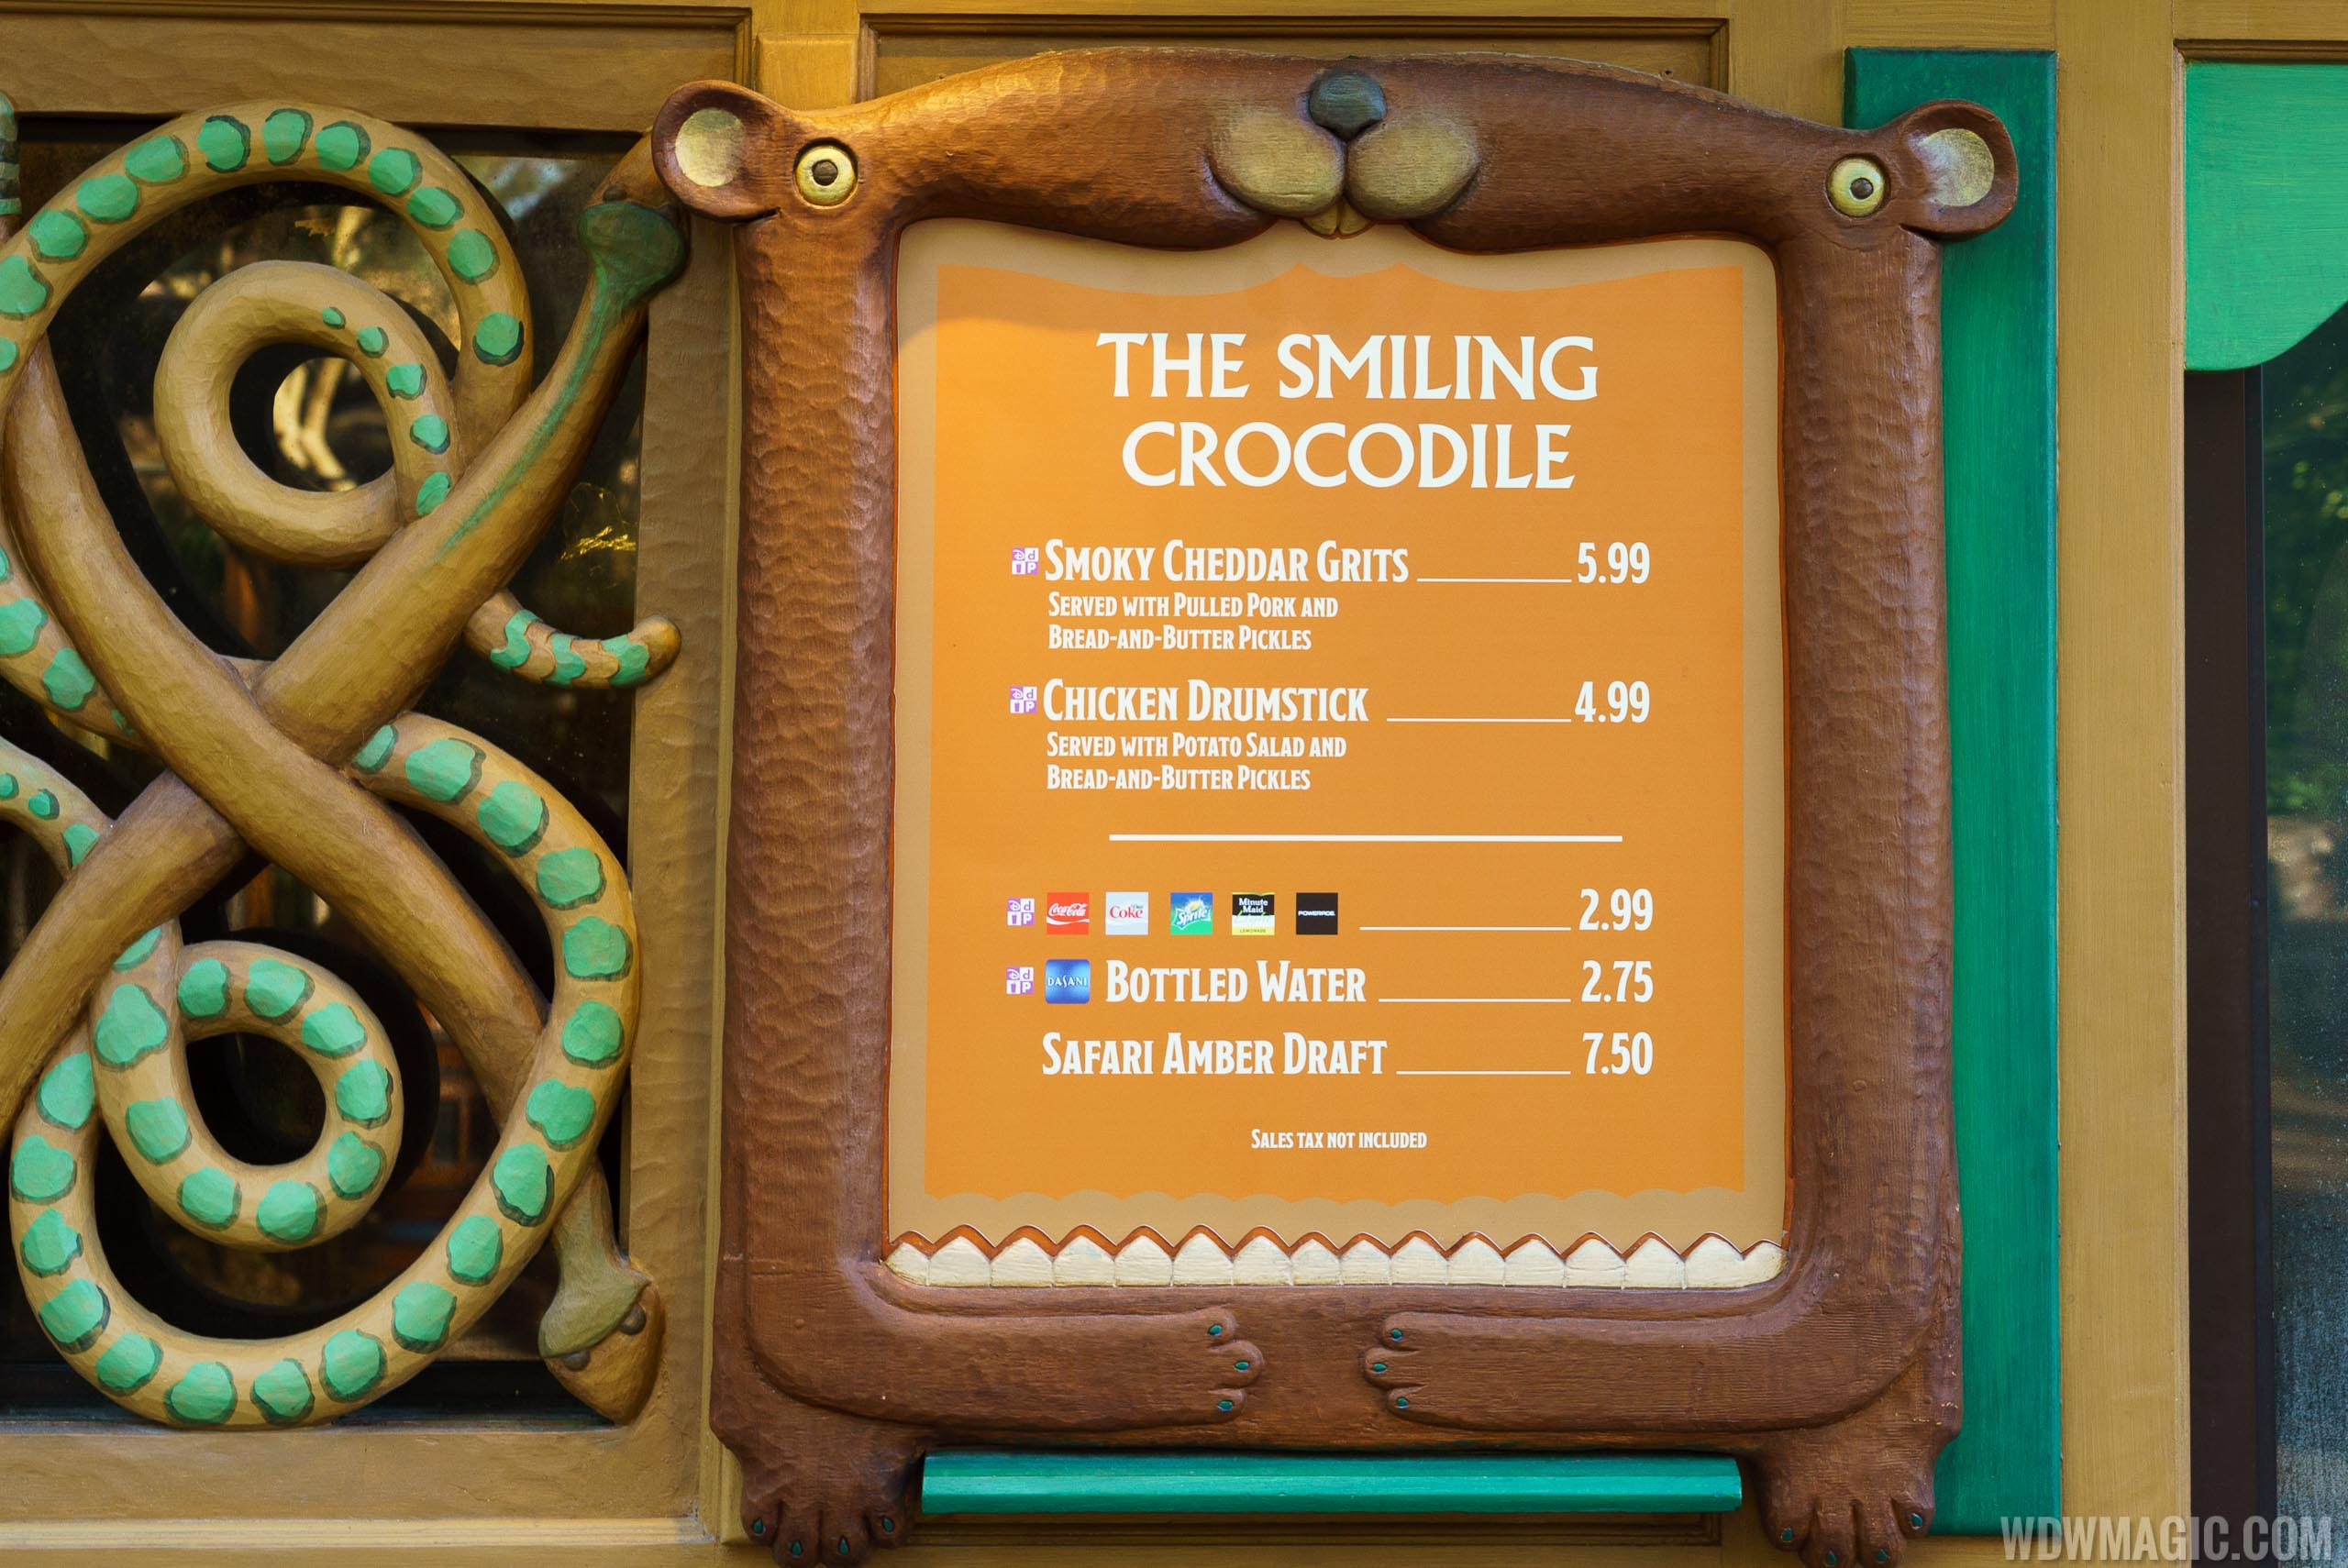 The Smiling Crocodile overview